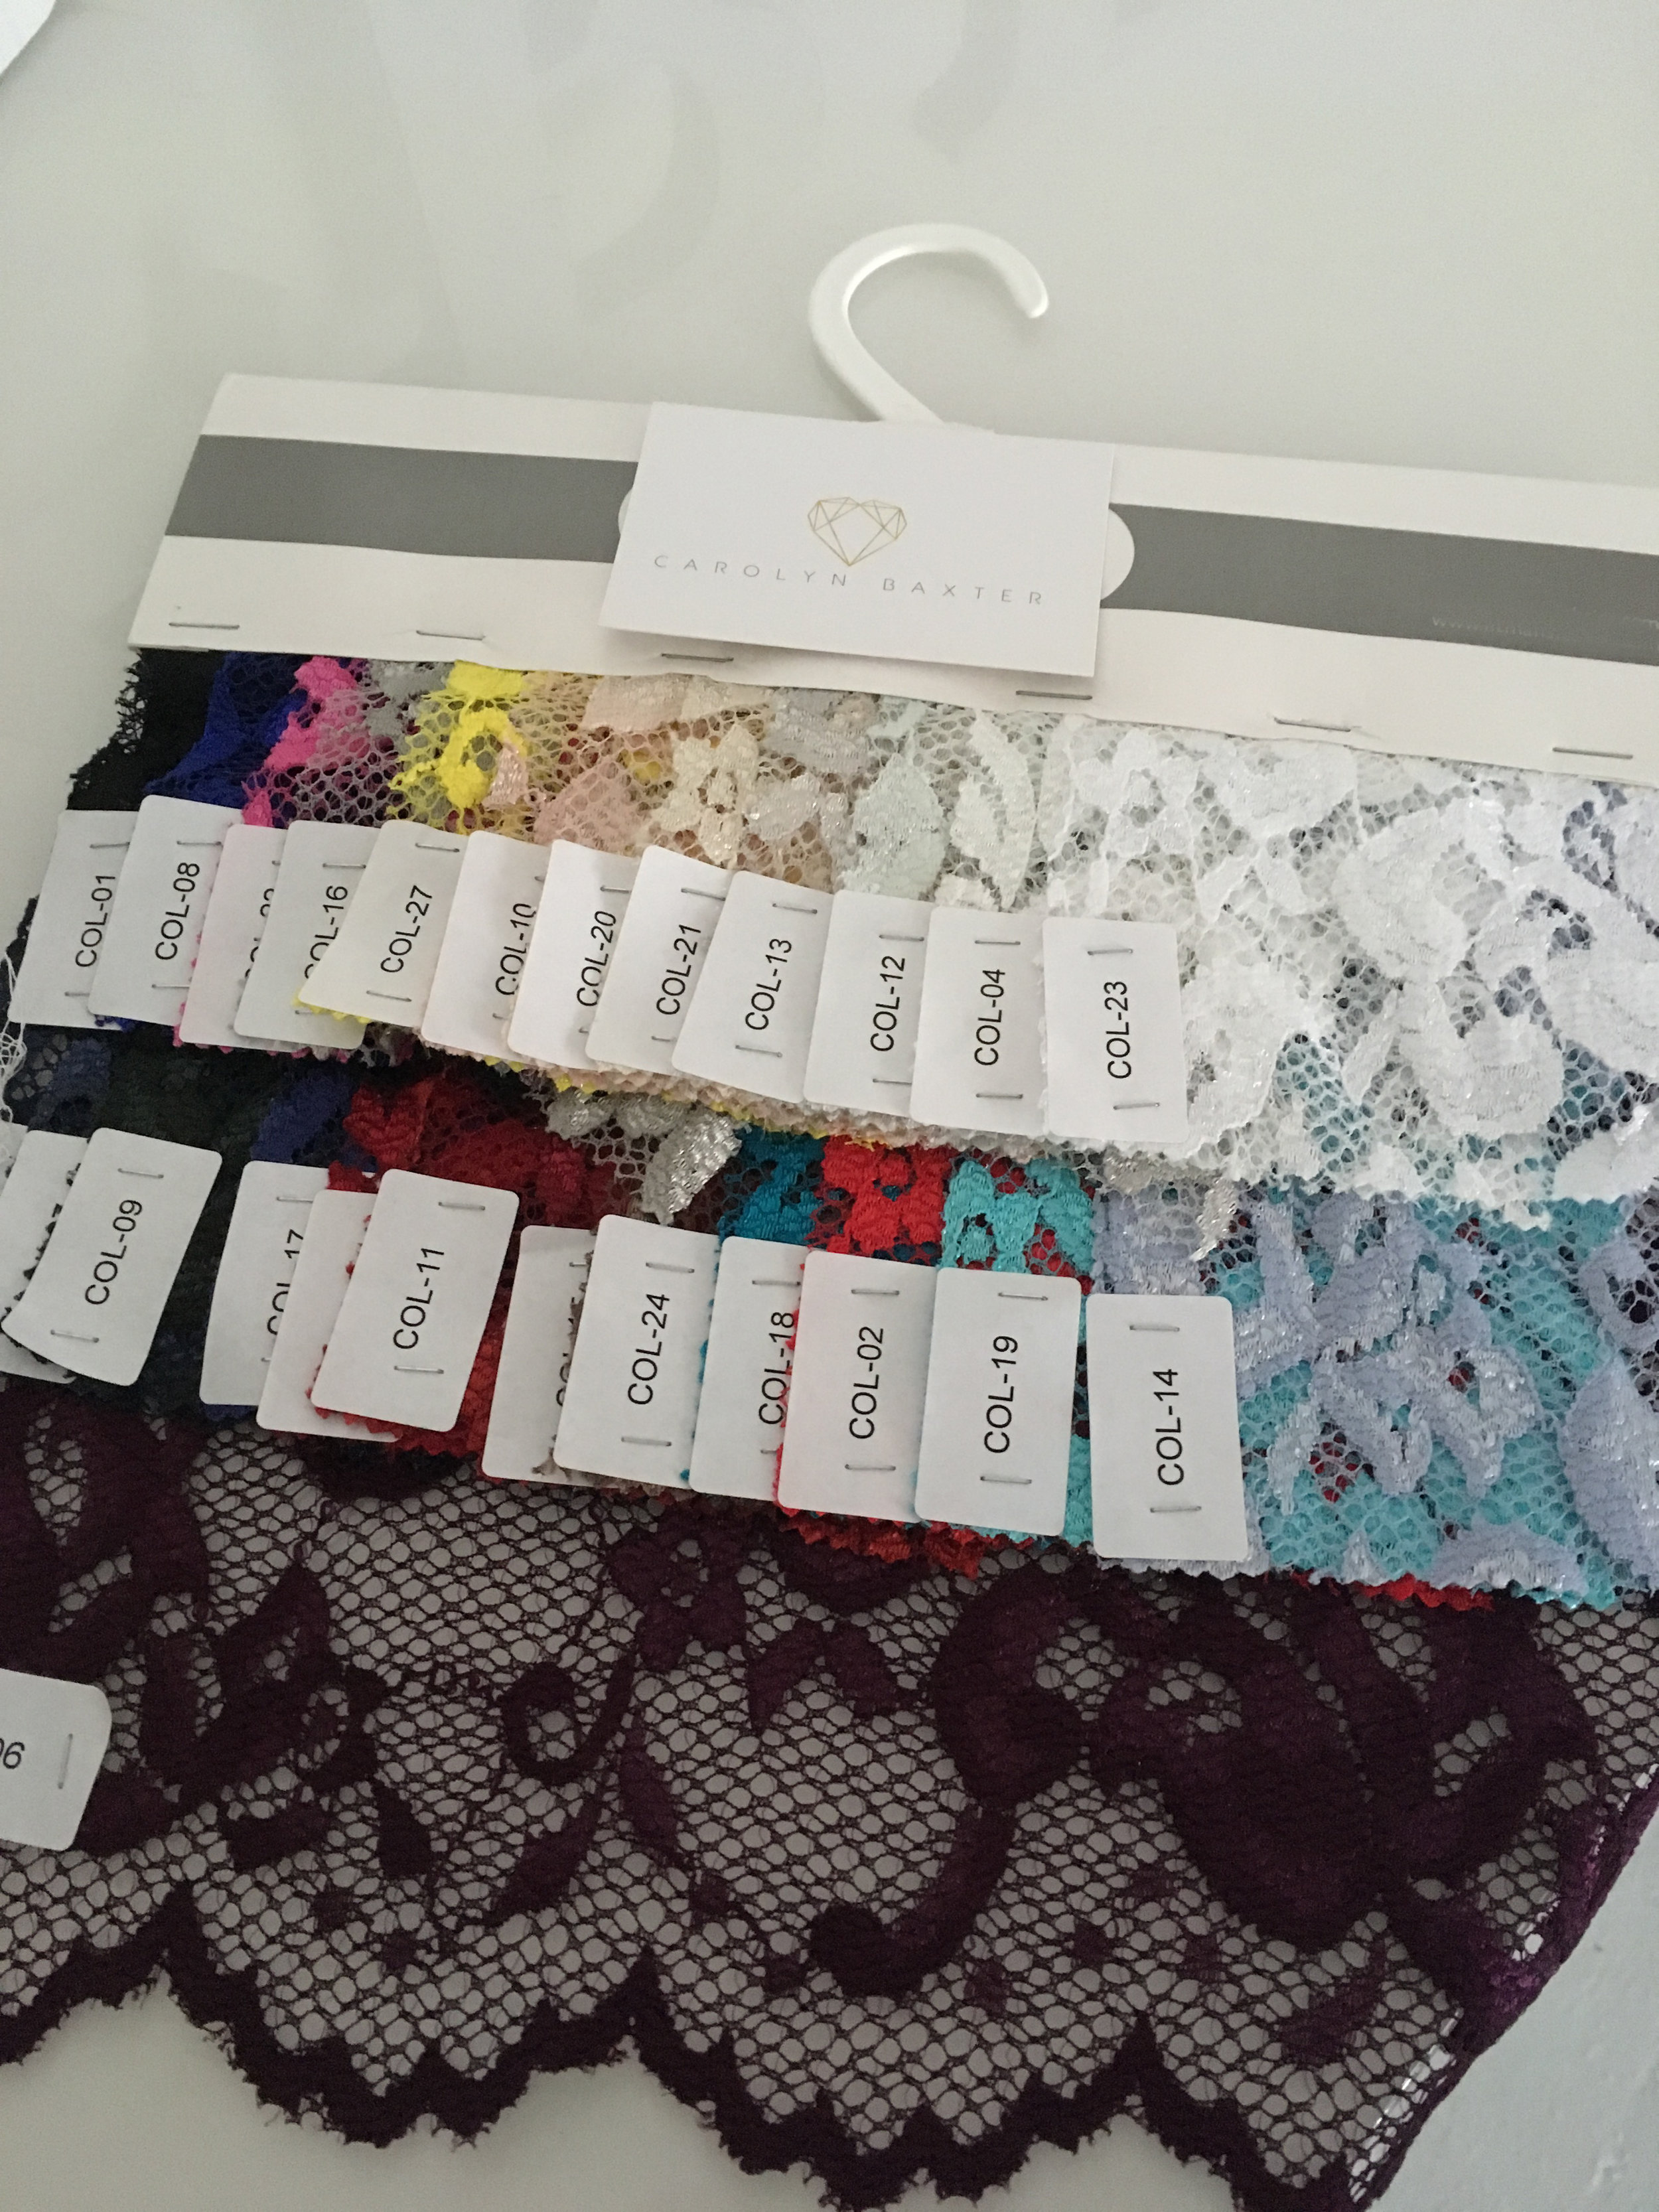 These are some of the lace colour shades we have available to match to your skirt shades.